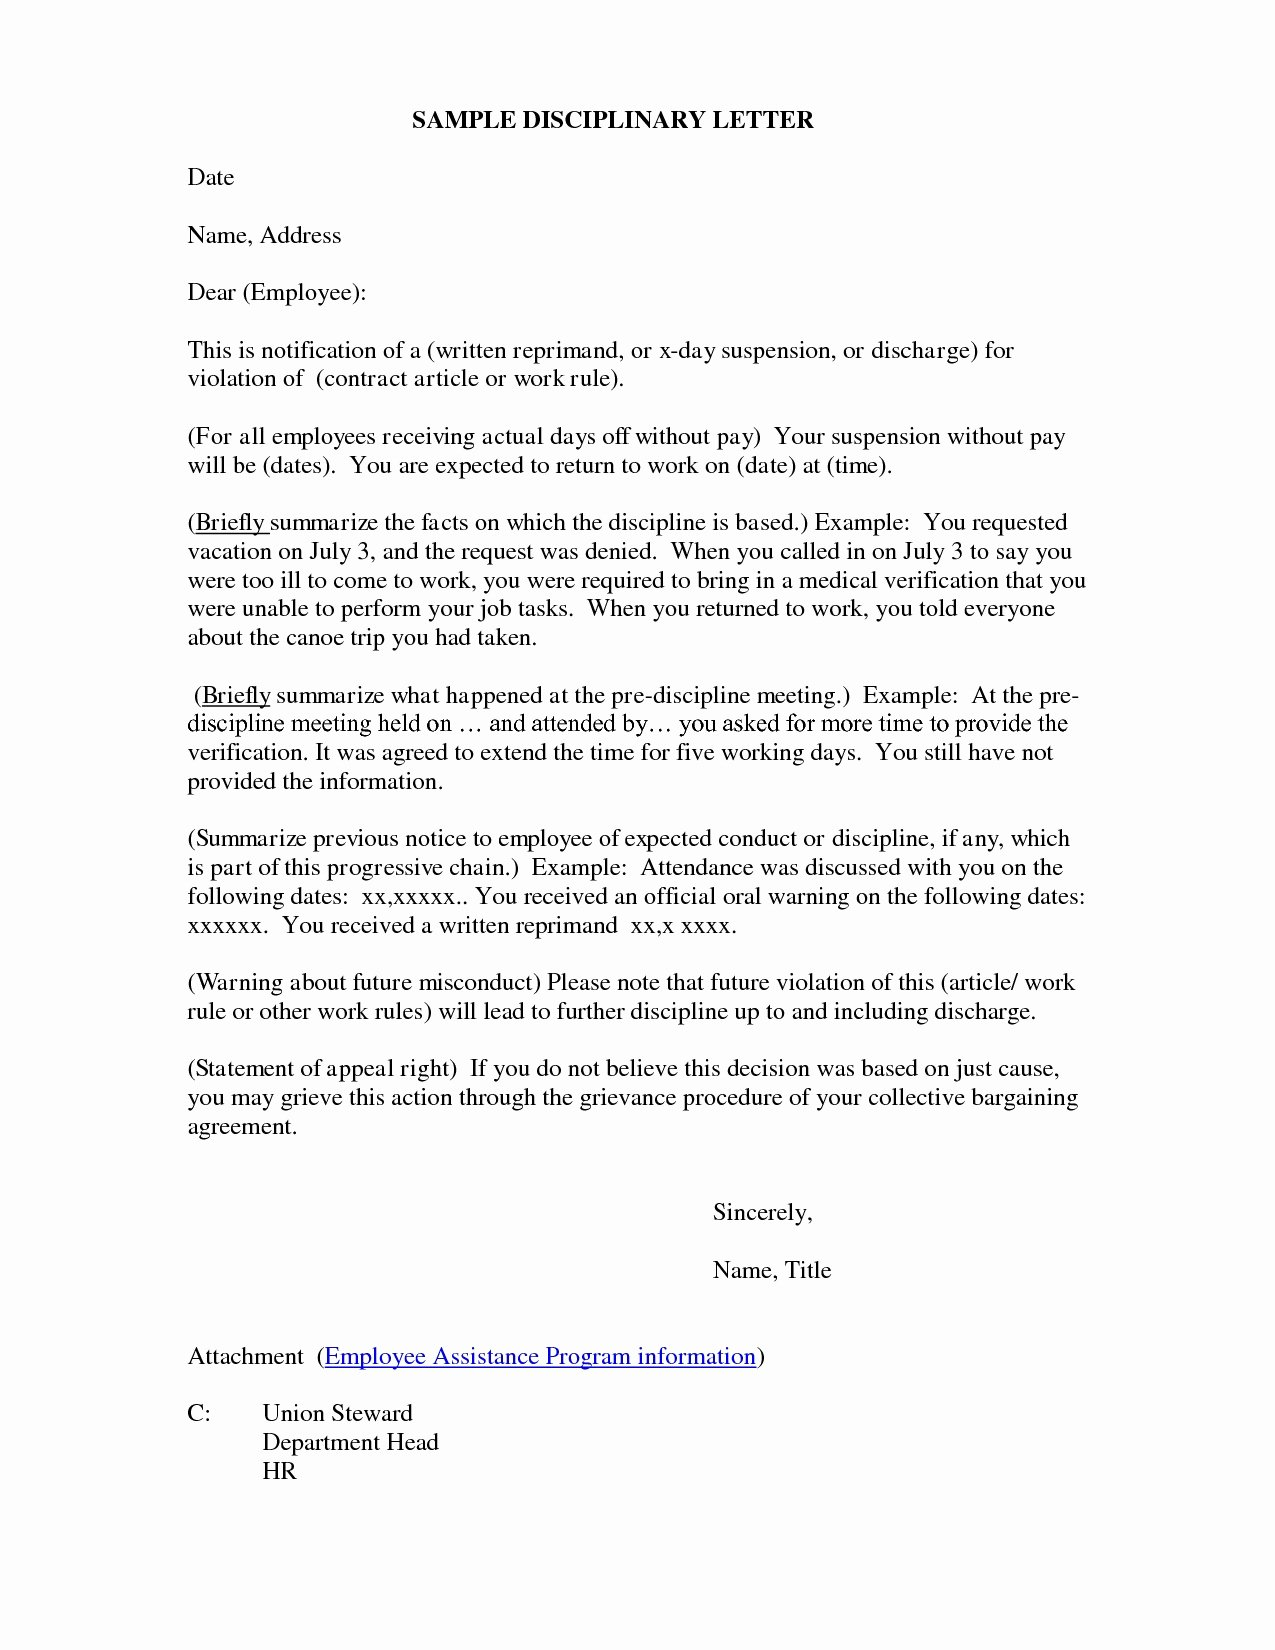 Disciplinary Letter Example